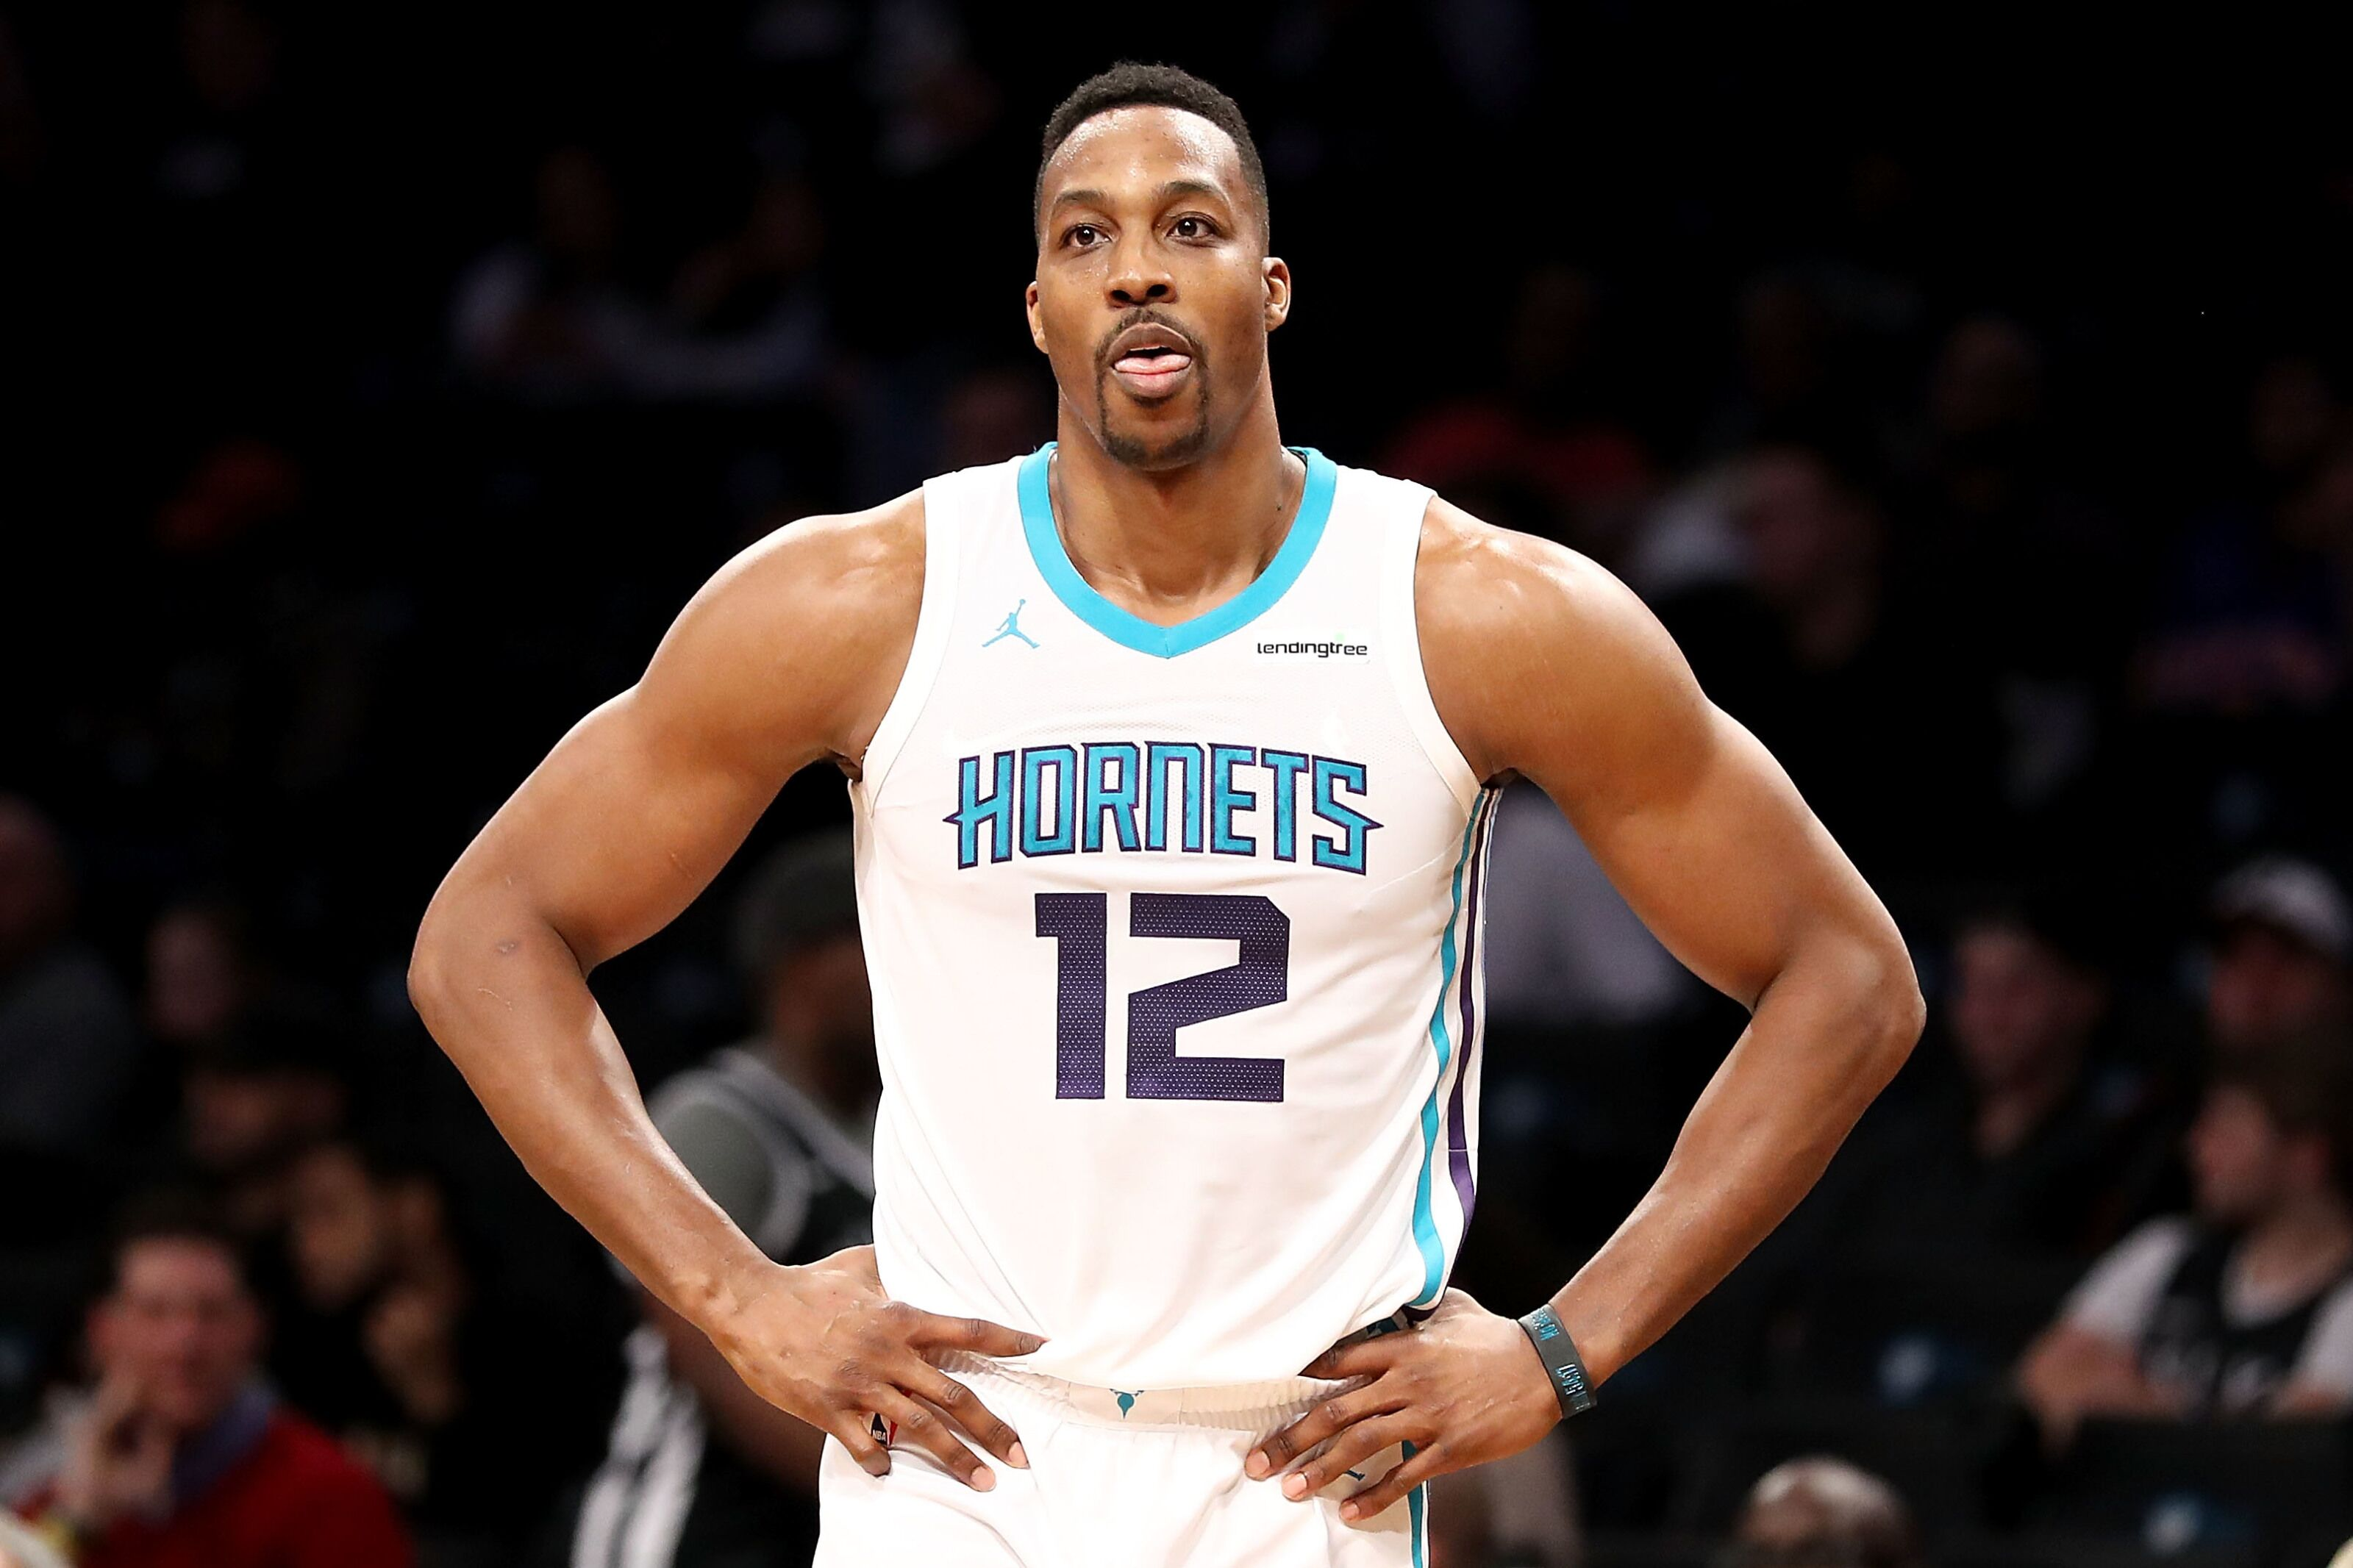 Dwight Howard: NBA Trade Grades: Hornets Will Deal Dwight Howard To Nets